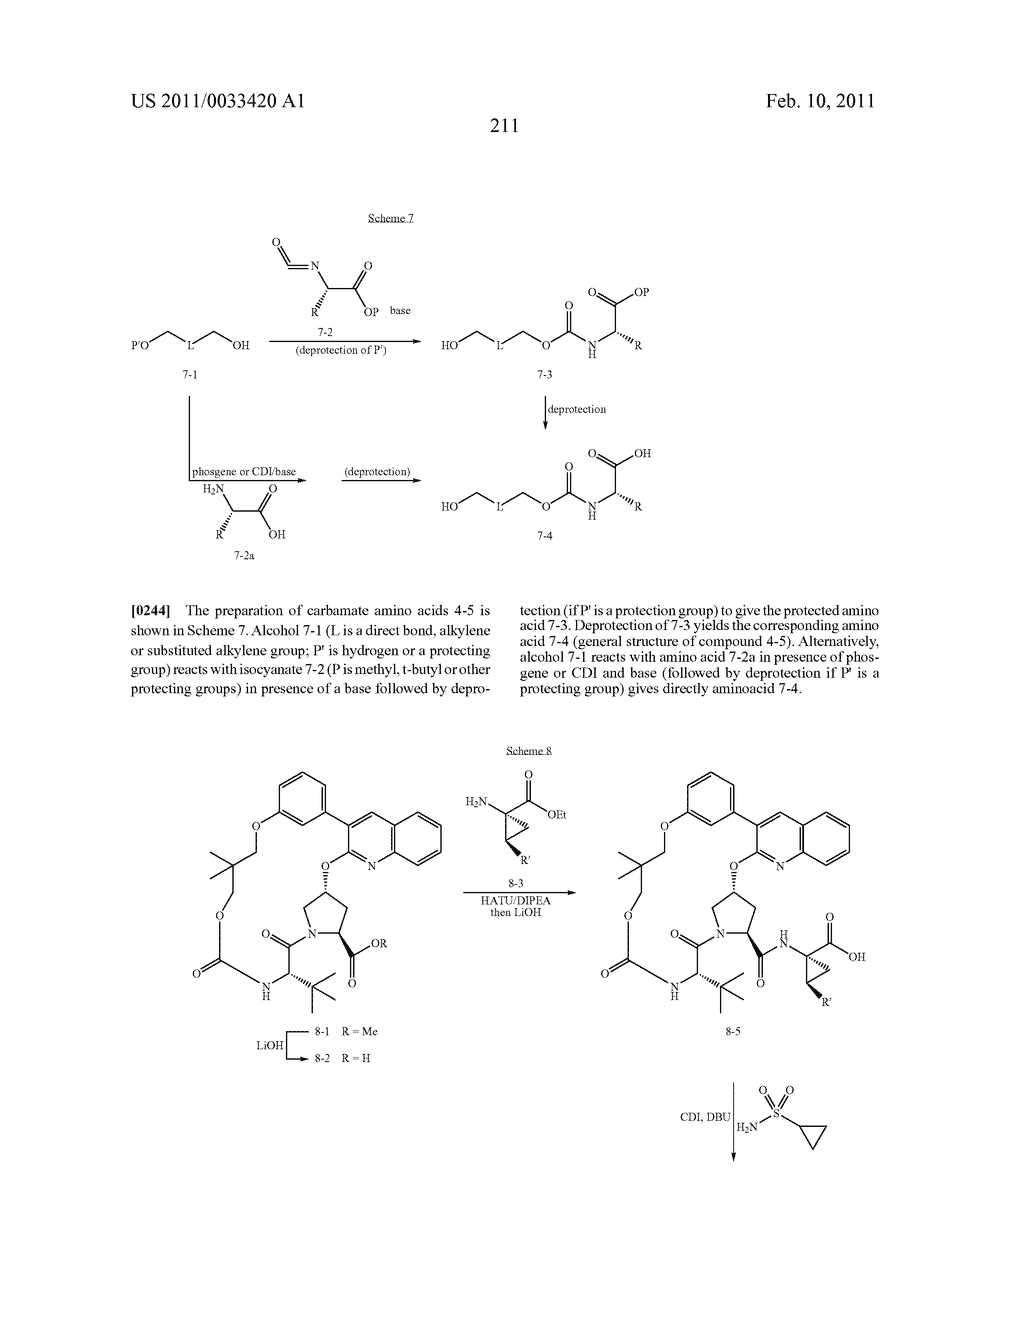 MACROCYCLIC COMPOUNDS AS HEPATITIS C VIRUS INHIBITORS - diagram, schematic, and image 212